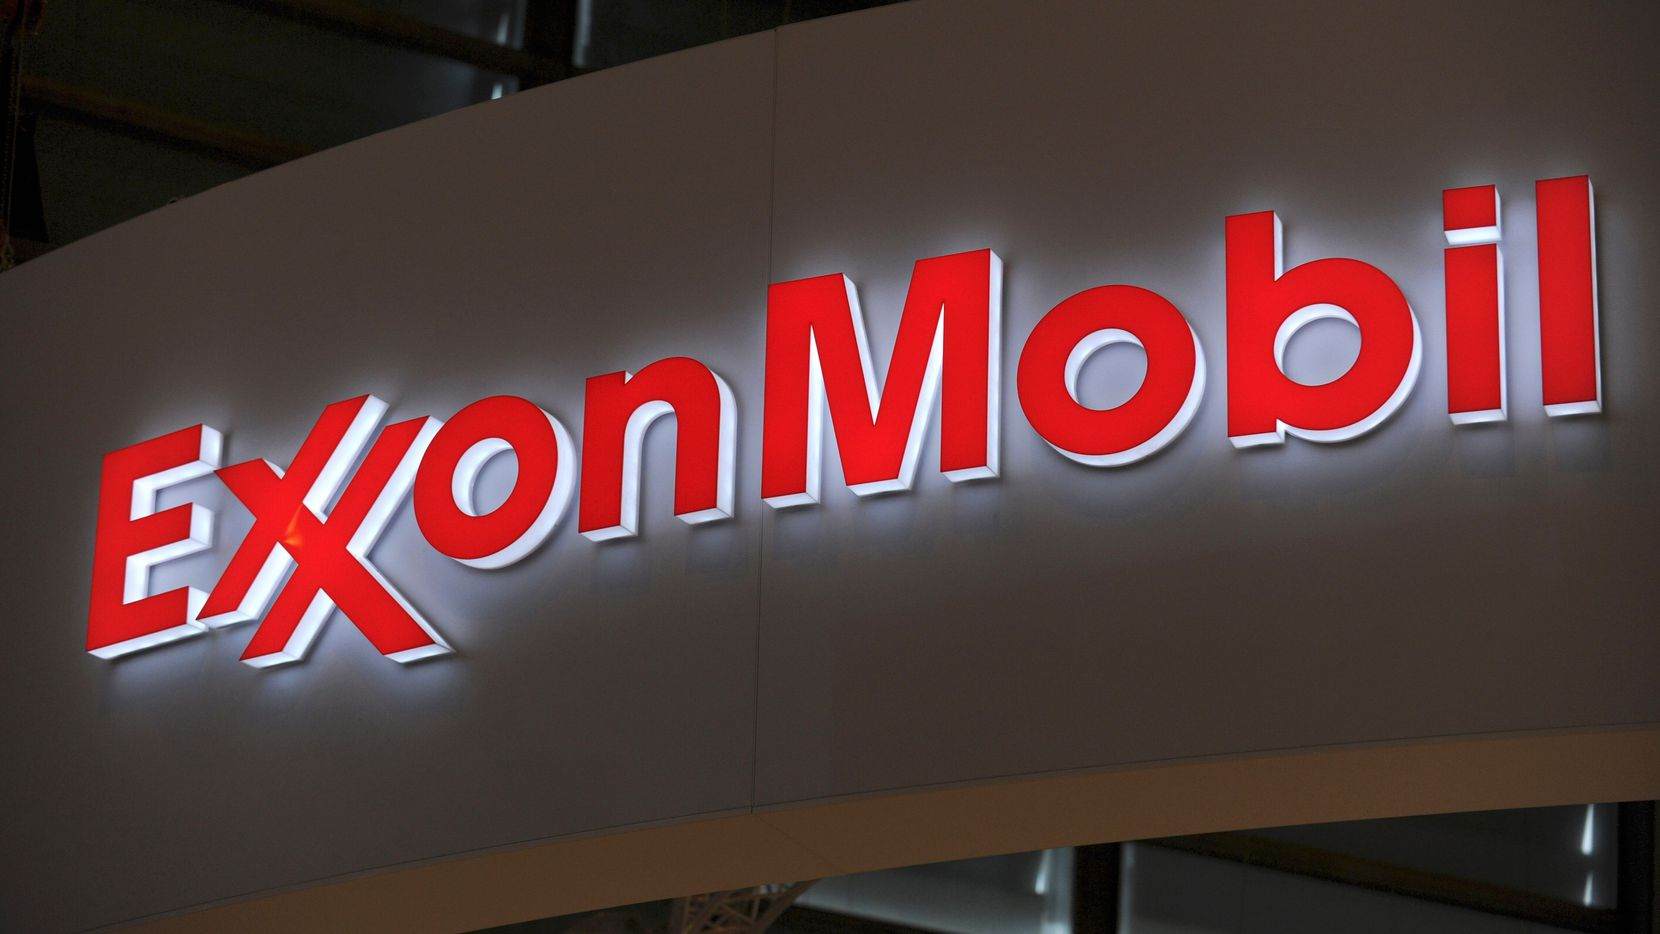 The last time Exxon Mobil generated enough free cash to cover its dividend payout was the third quarter of 2018, according to data compiled by Bloomberg.